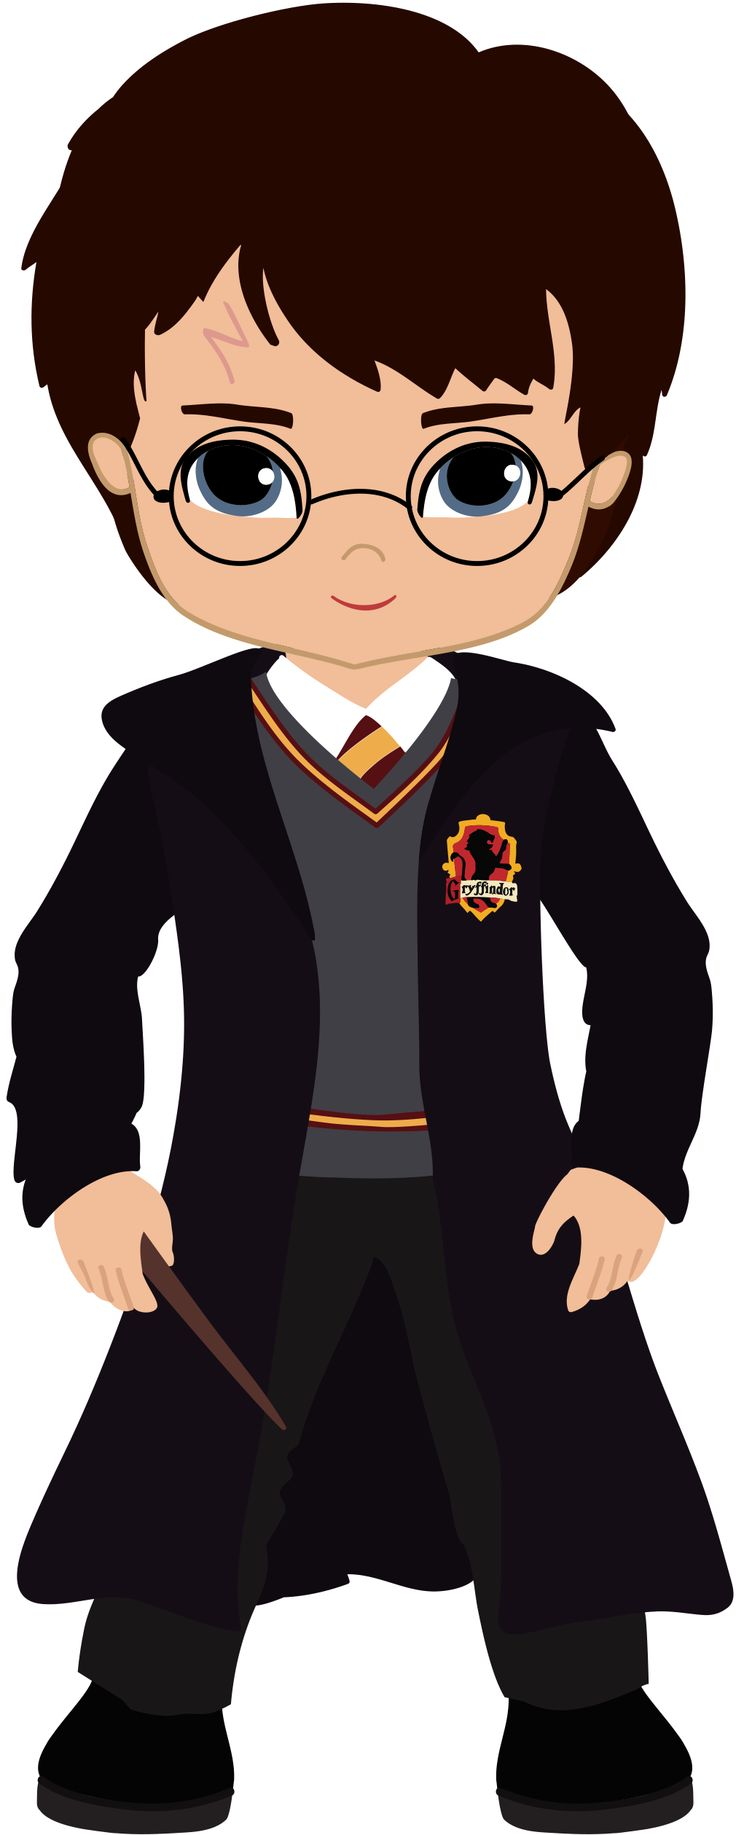 Harry potter robe clipart clipart library stock Free harry potter clip art pictures clipartix 2 - Cliparting.com clipart library stock